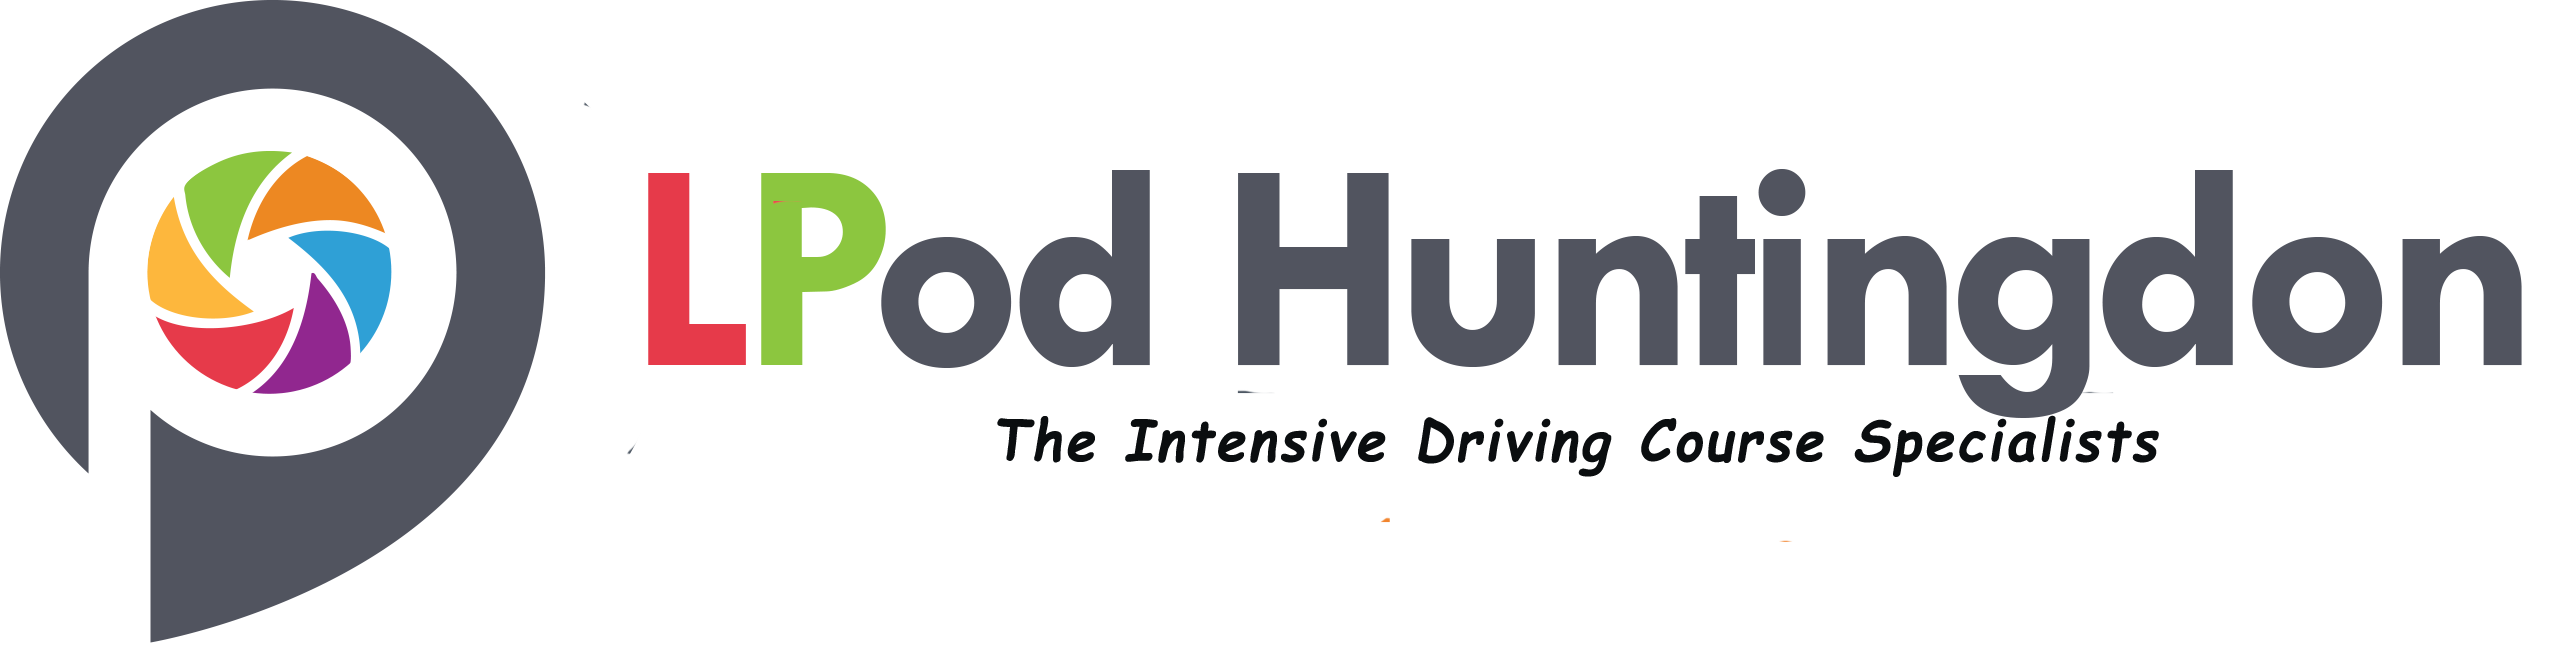 intensive driving courses huntingdon, intensive driving lessons huntingdon, intensive driving school huntingdon